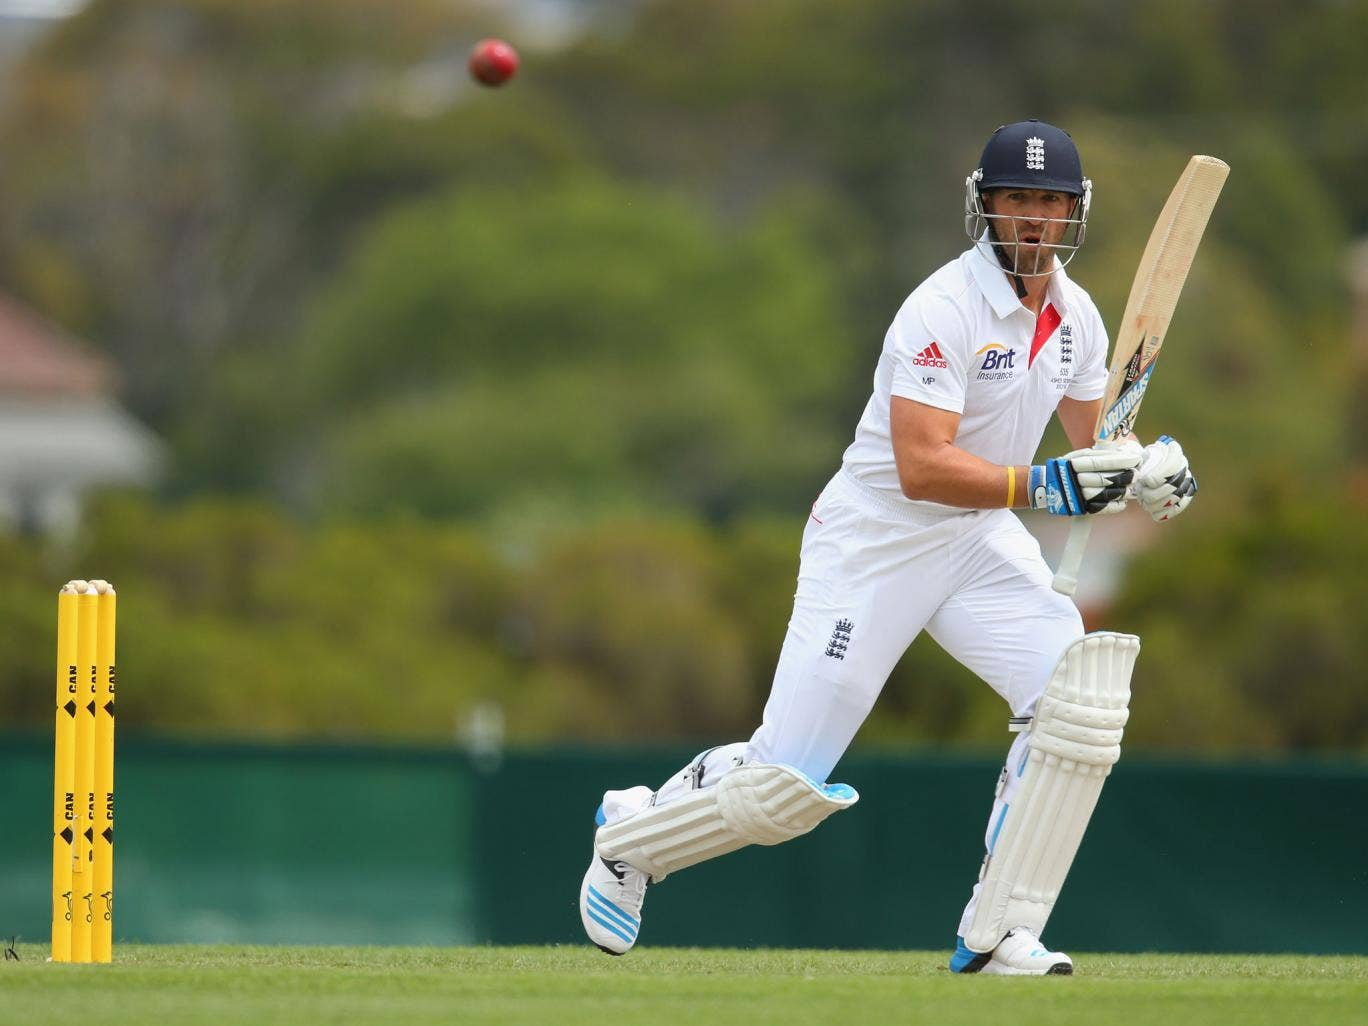 England will be without wicketkeeper Matt Prior for their final Ashes warm-up match